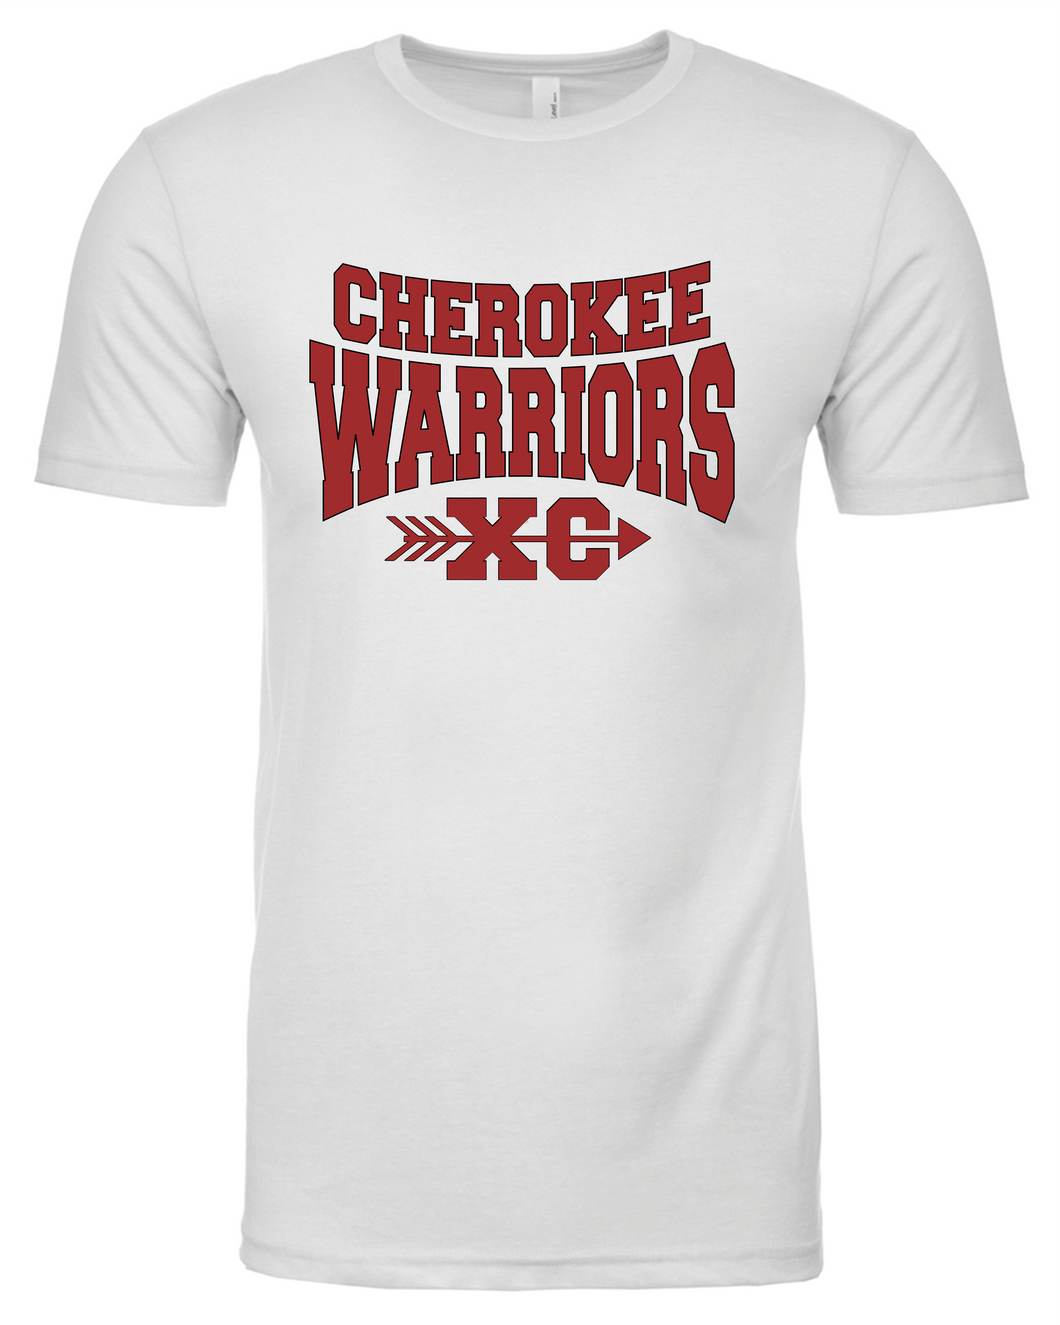 Item CHS-XC-545-5 - Next Level CVC Crew - Cherokee Warriors XC Front and 2020 Warriors on Back Logos